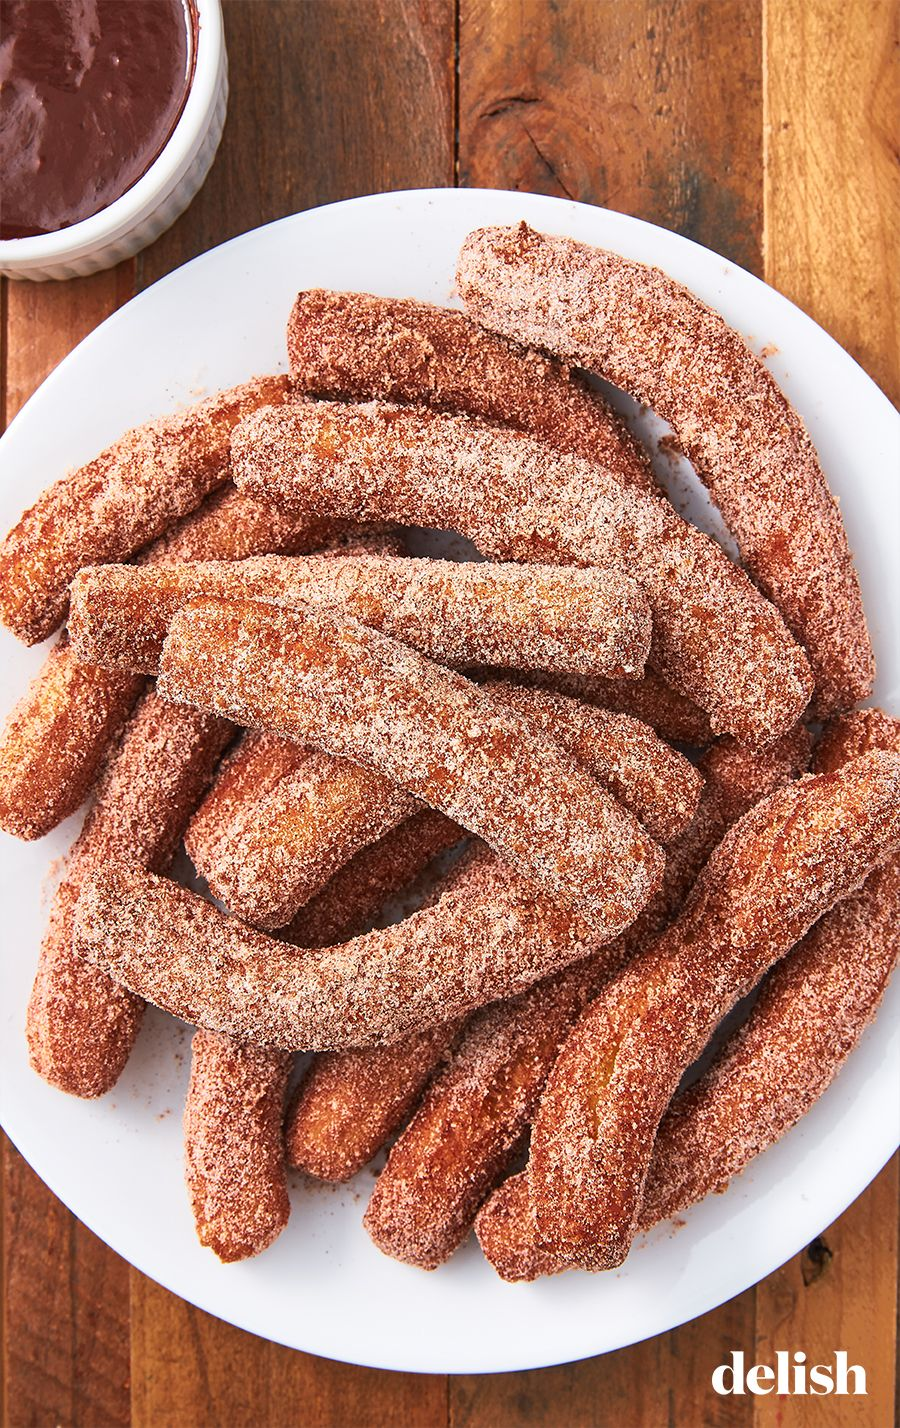 Churros Are Our Favorite Cinnamon Sugar Coated Treat Recipe Yummy Food Dessert Easy Churros Recipe Homemade Churros